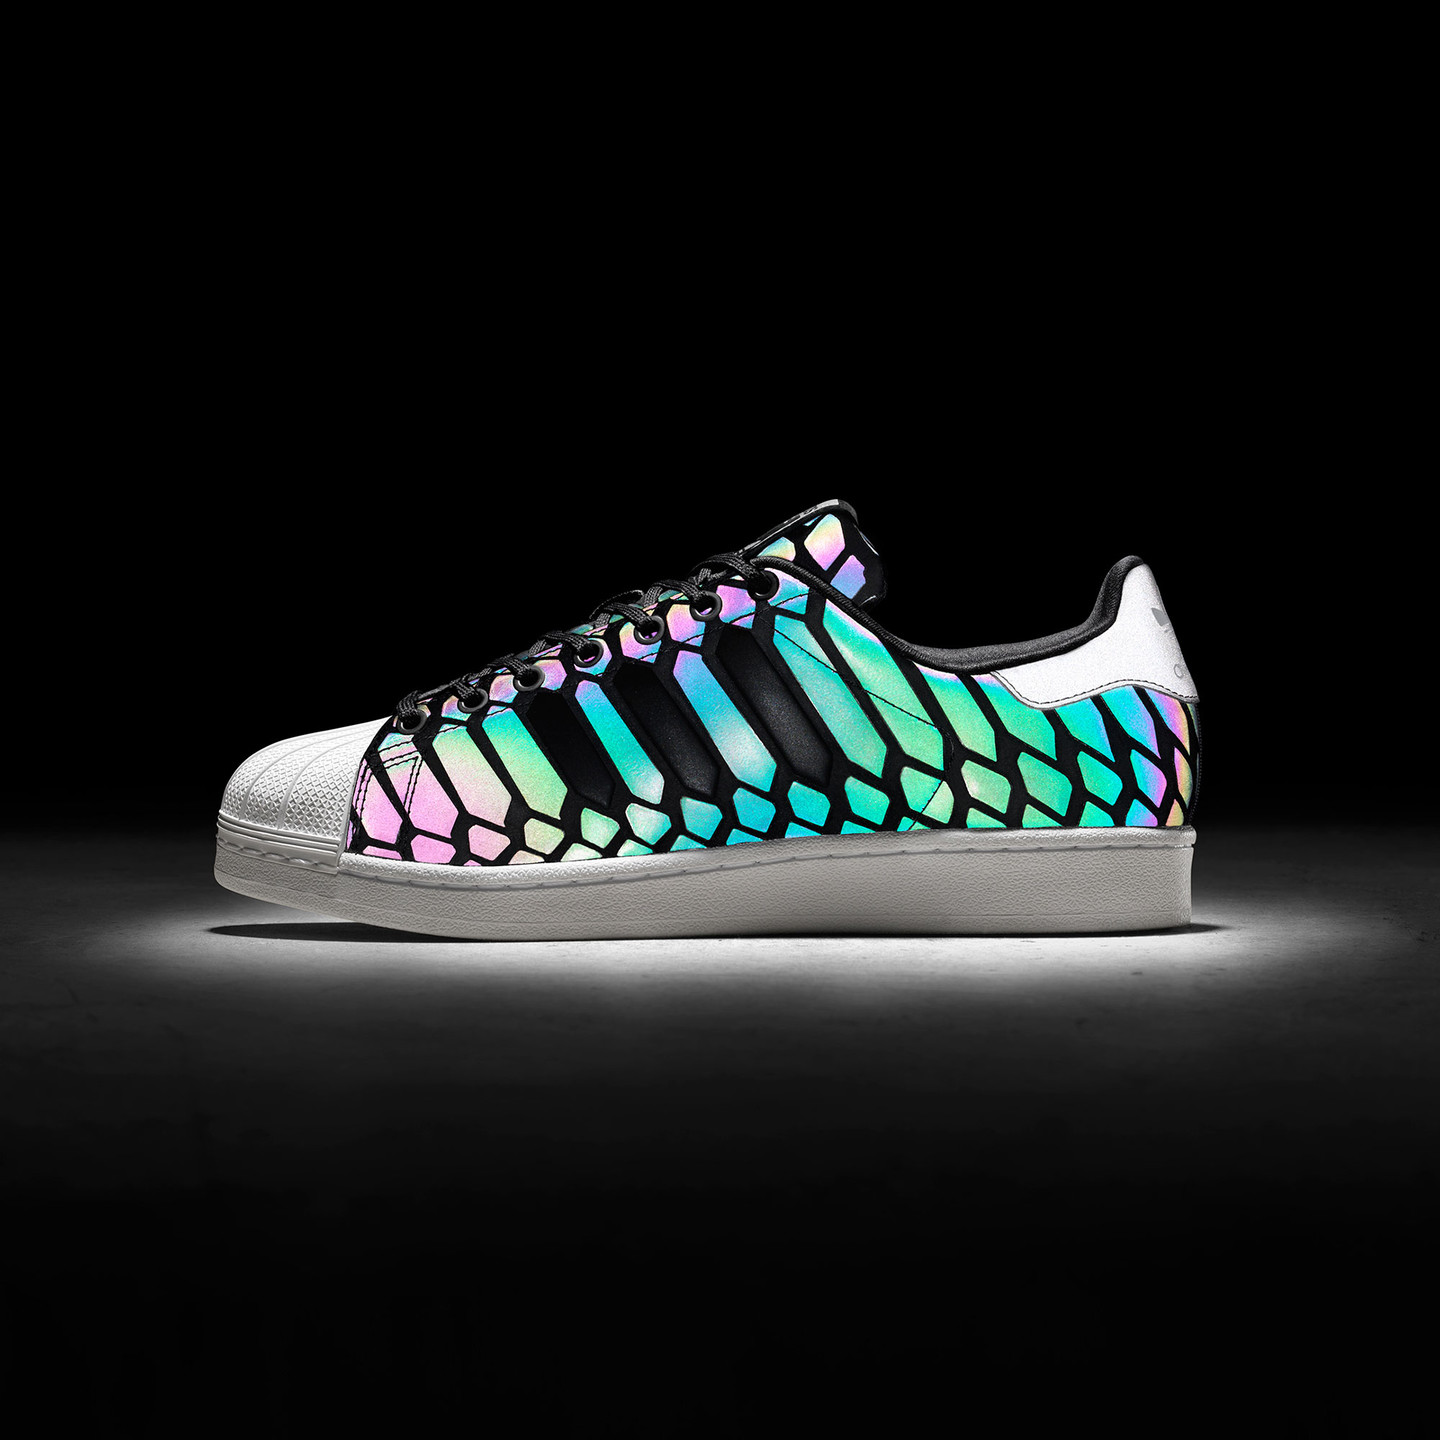 Adidas Superstar Xeno Pack Cblack / Supcol / Ftwwht D69366-37.33